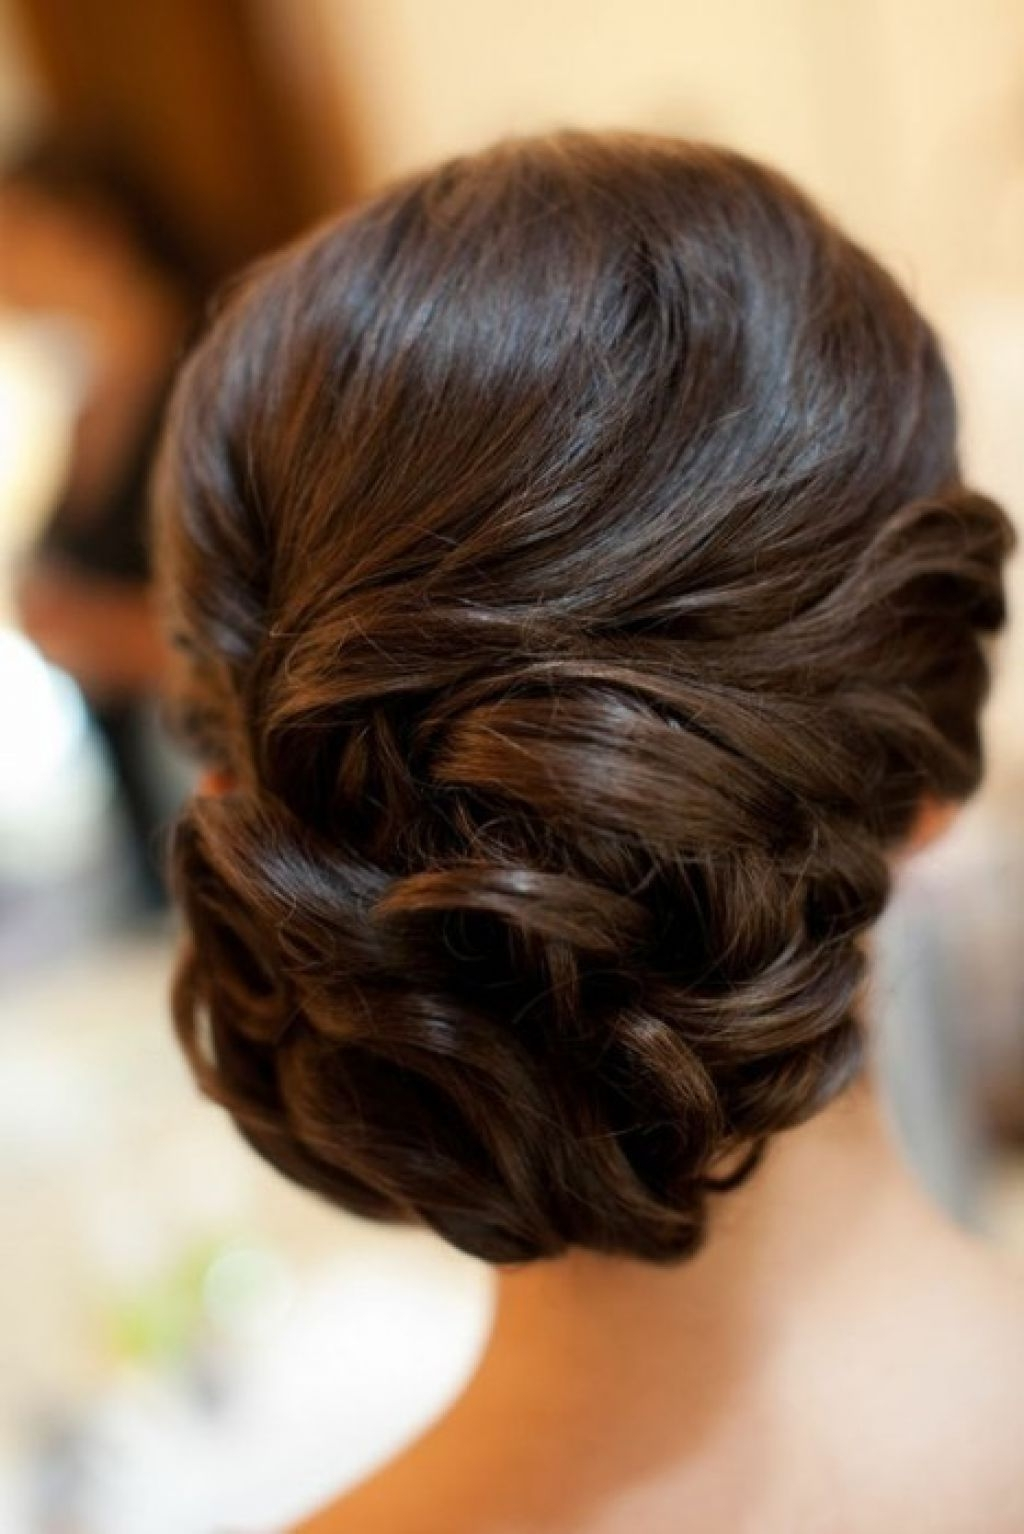 Wedding Hairstyles Ideas: Curly Low Updo Wedding Guest Hairstyles Intended For Hair Updo Hairstyles For Long Hair (View 15 of 15)